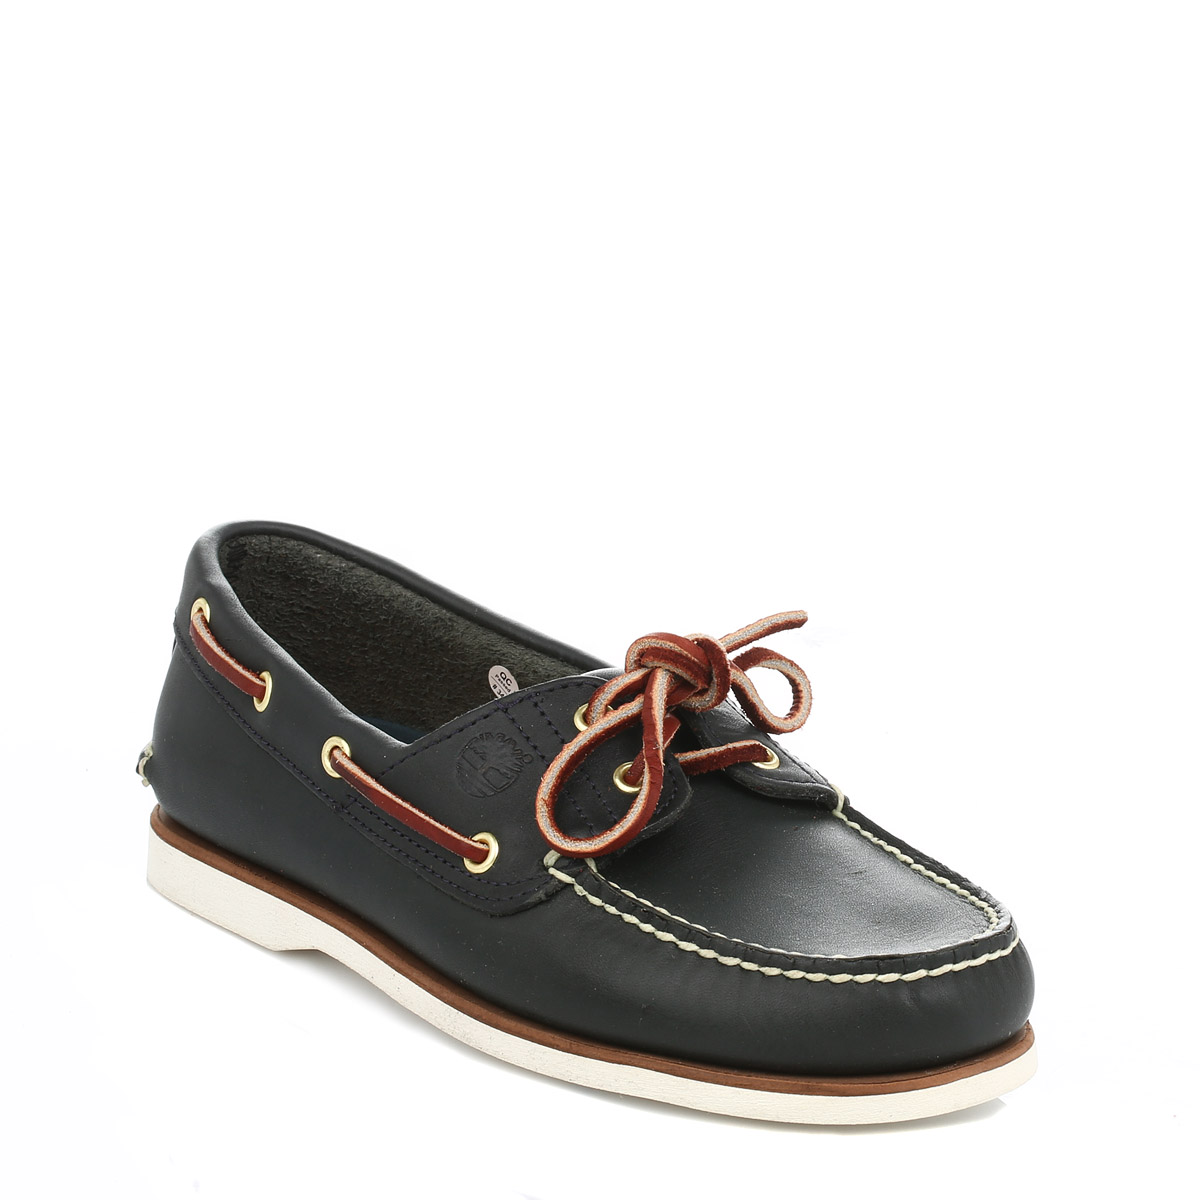 Timberland Leather Boat Shoe Brown